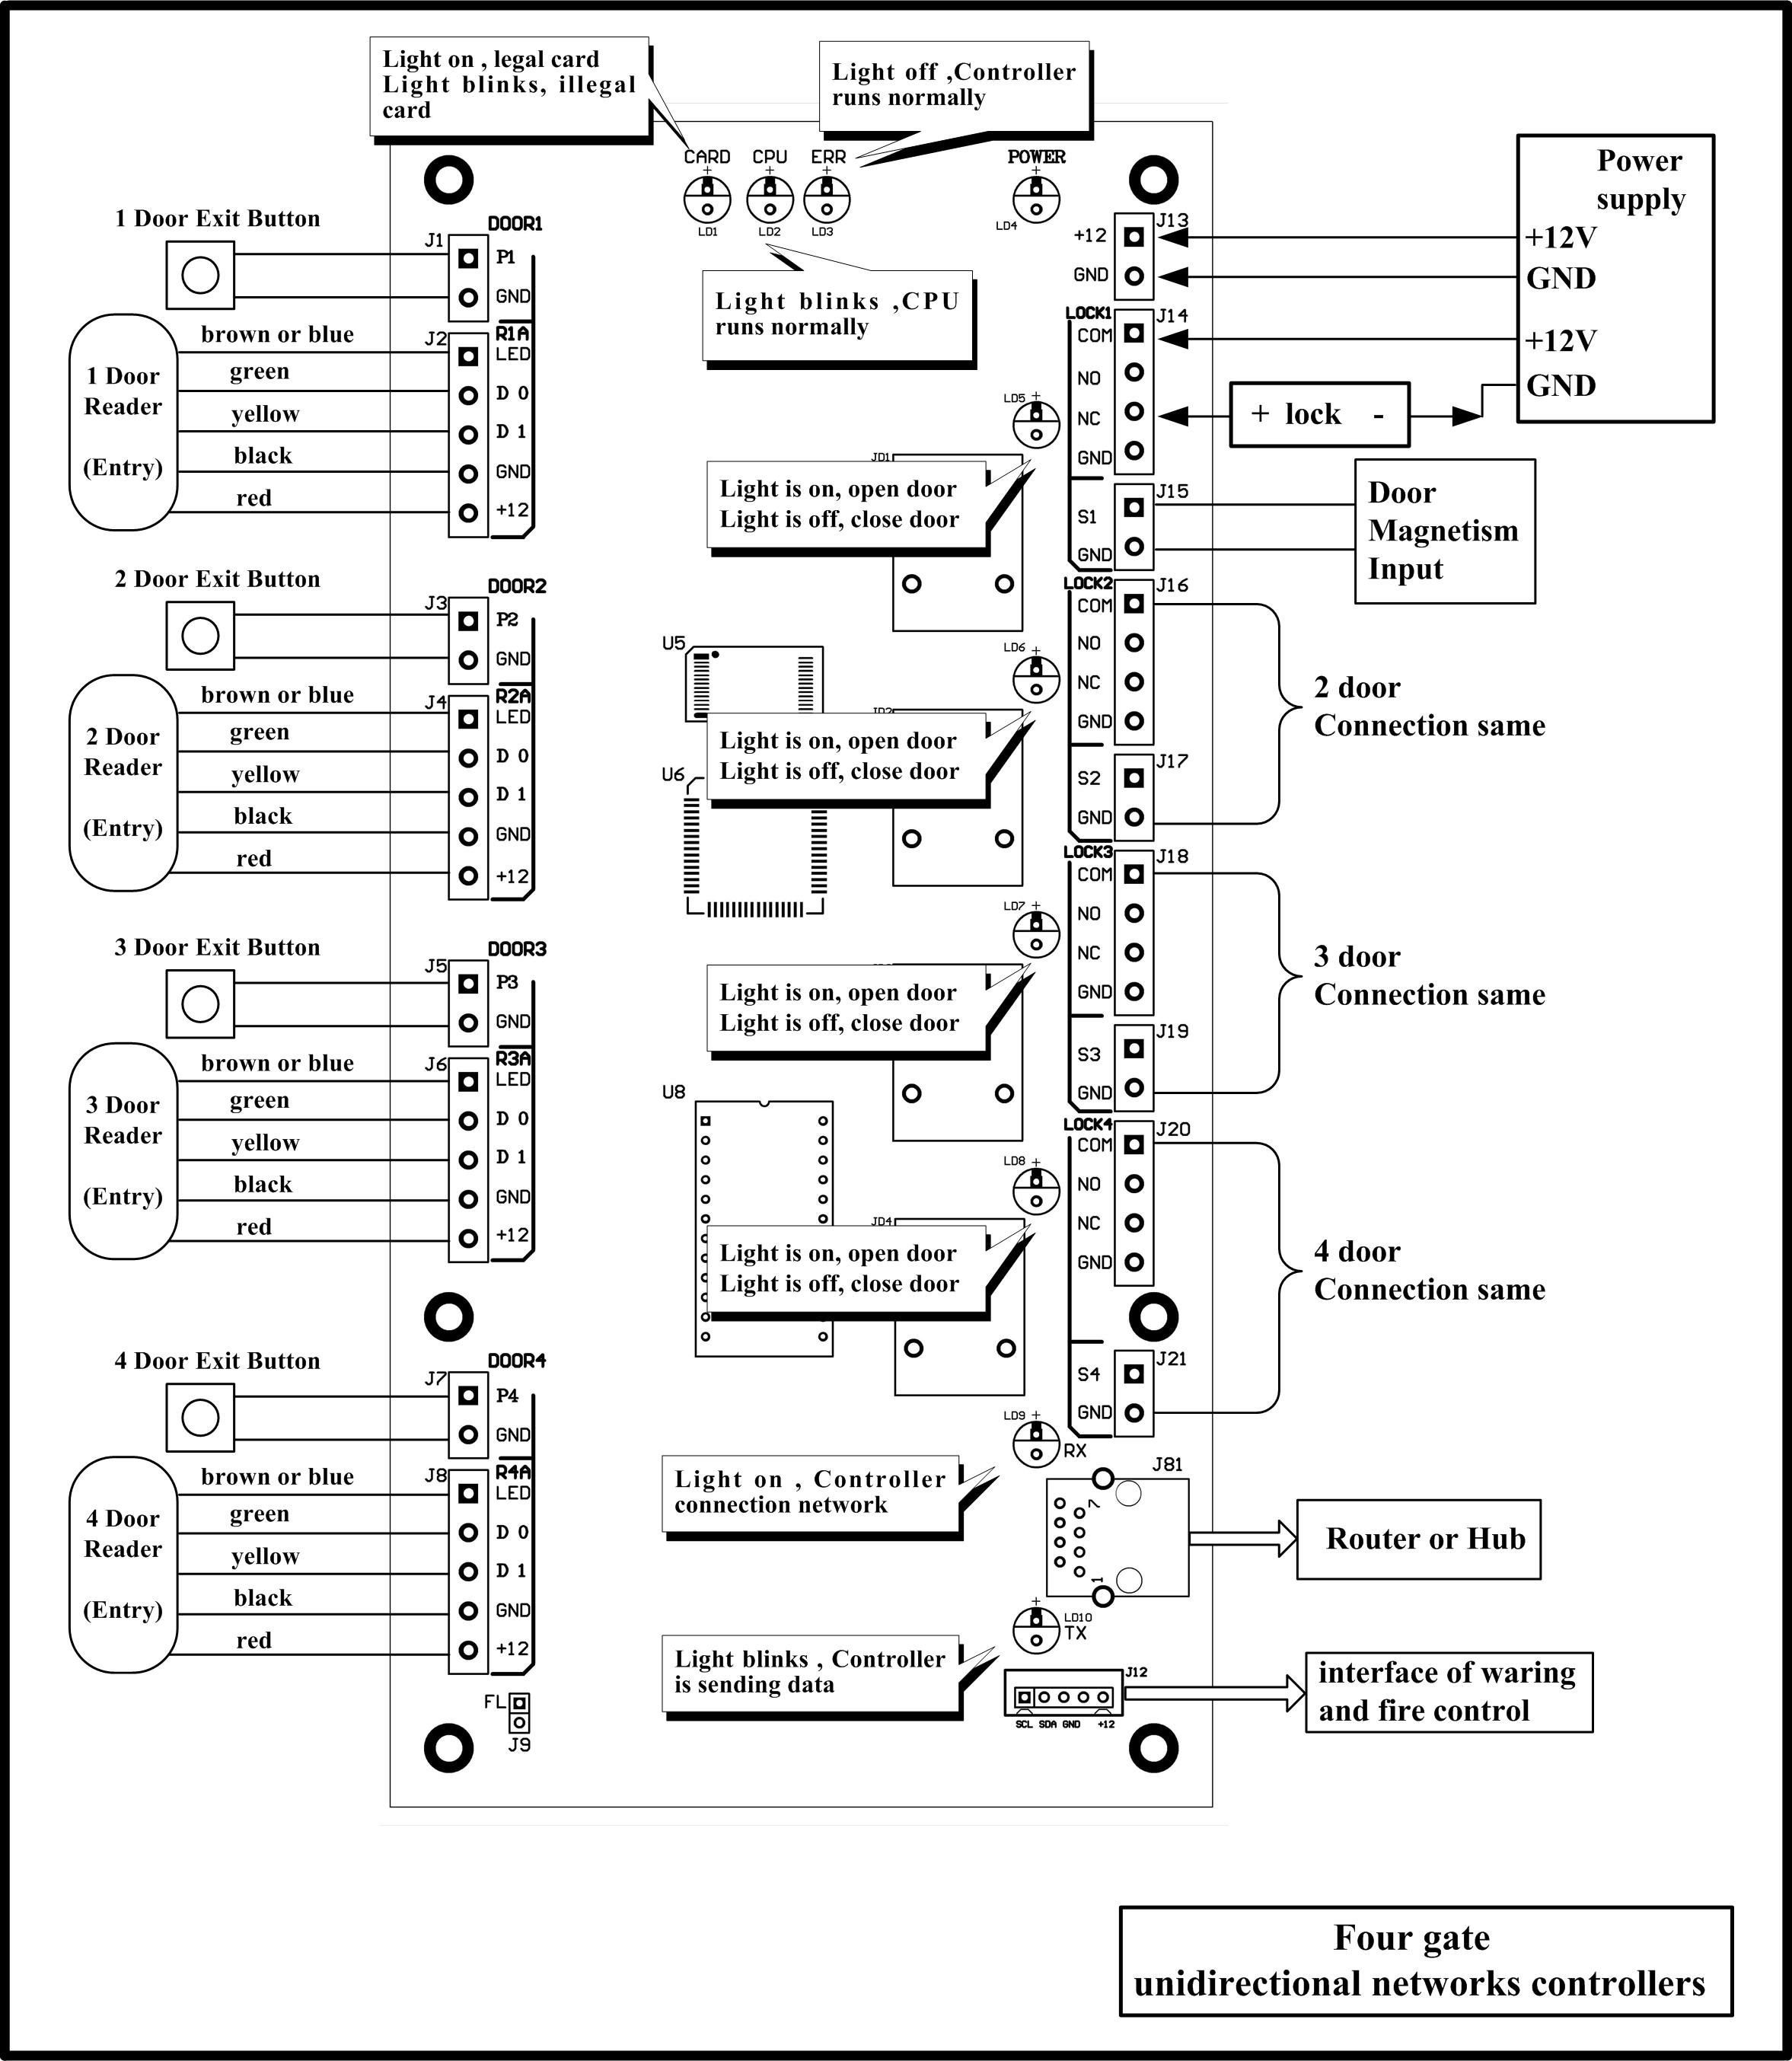 Lenel Access Control Wiring Diagram